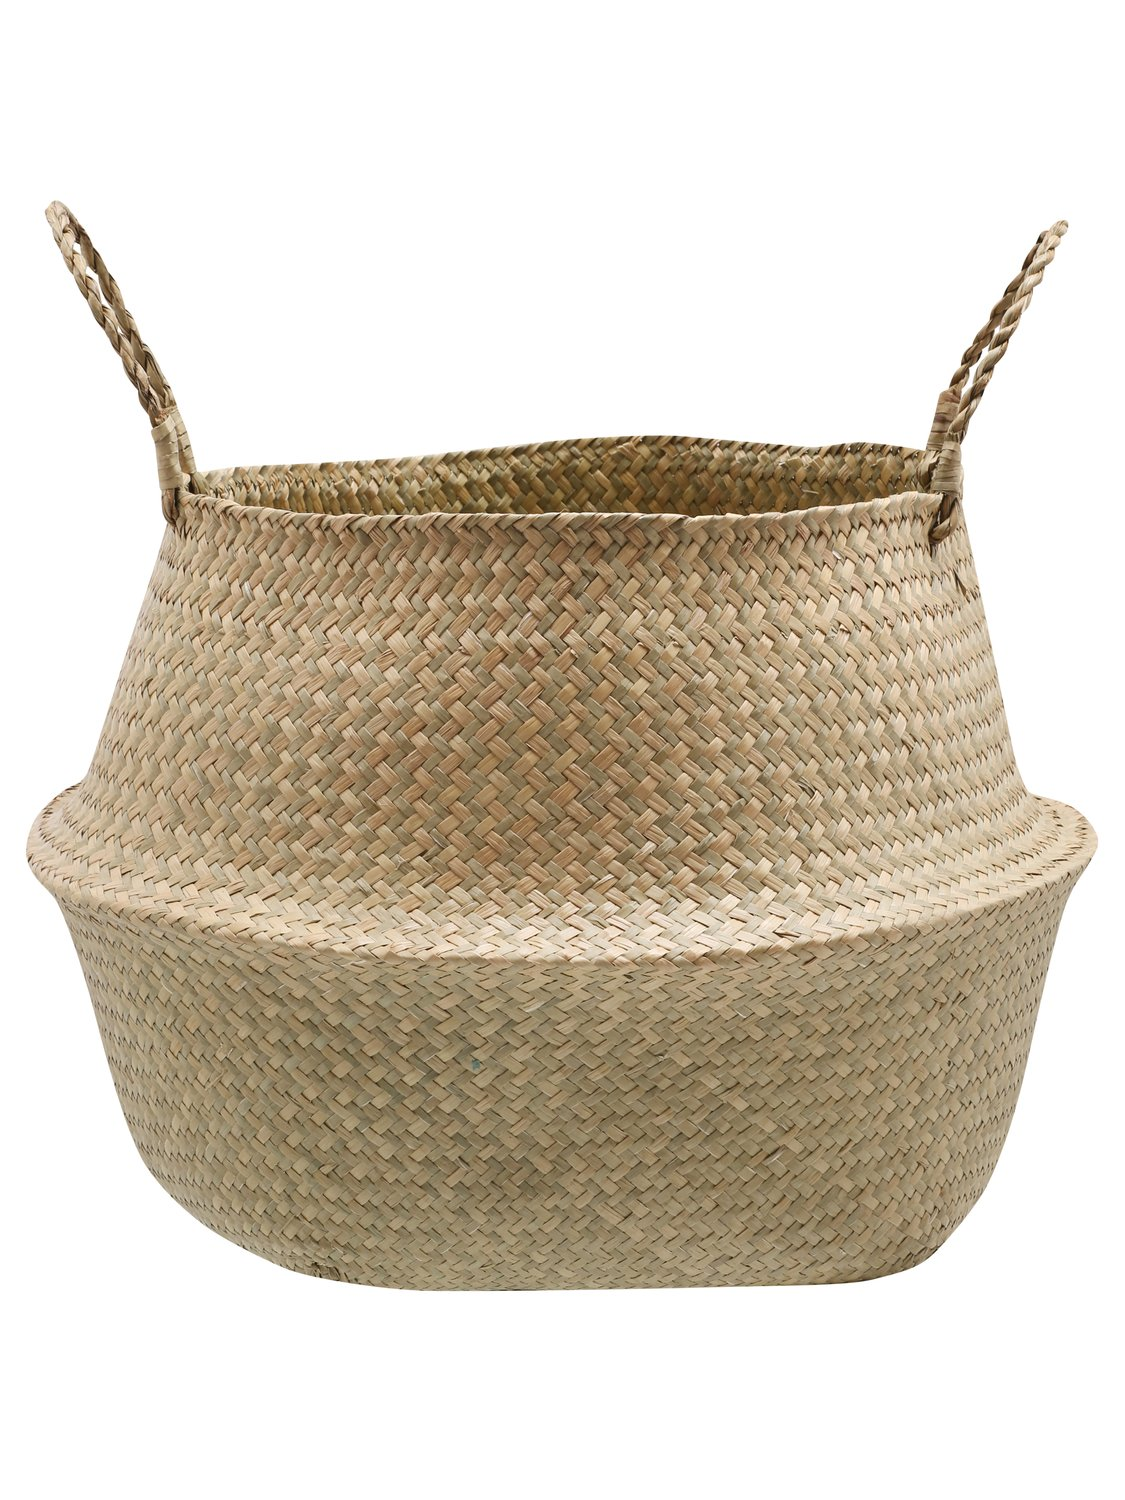 home large natural seagrass woven basket with handles w50cm x h35cm  - natural